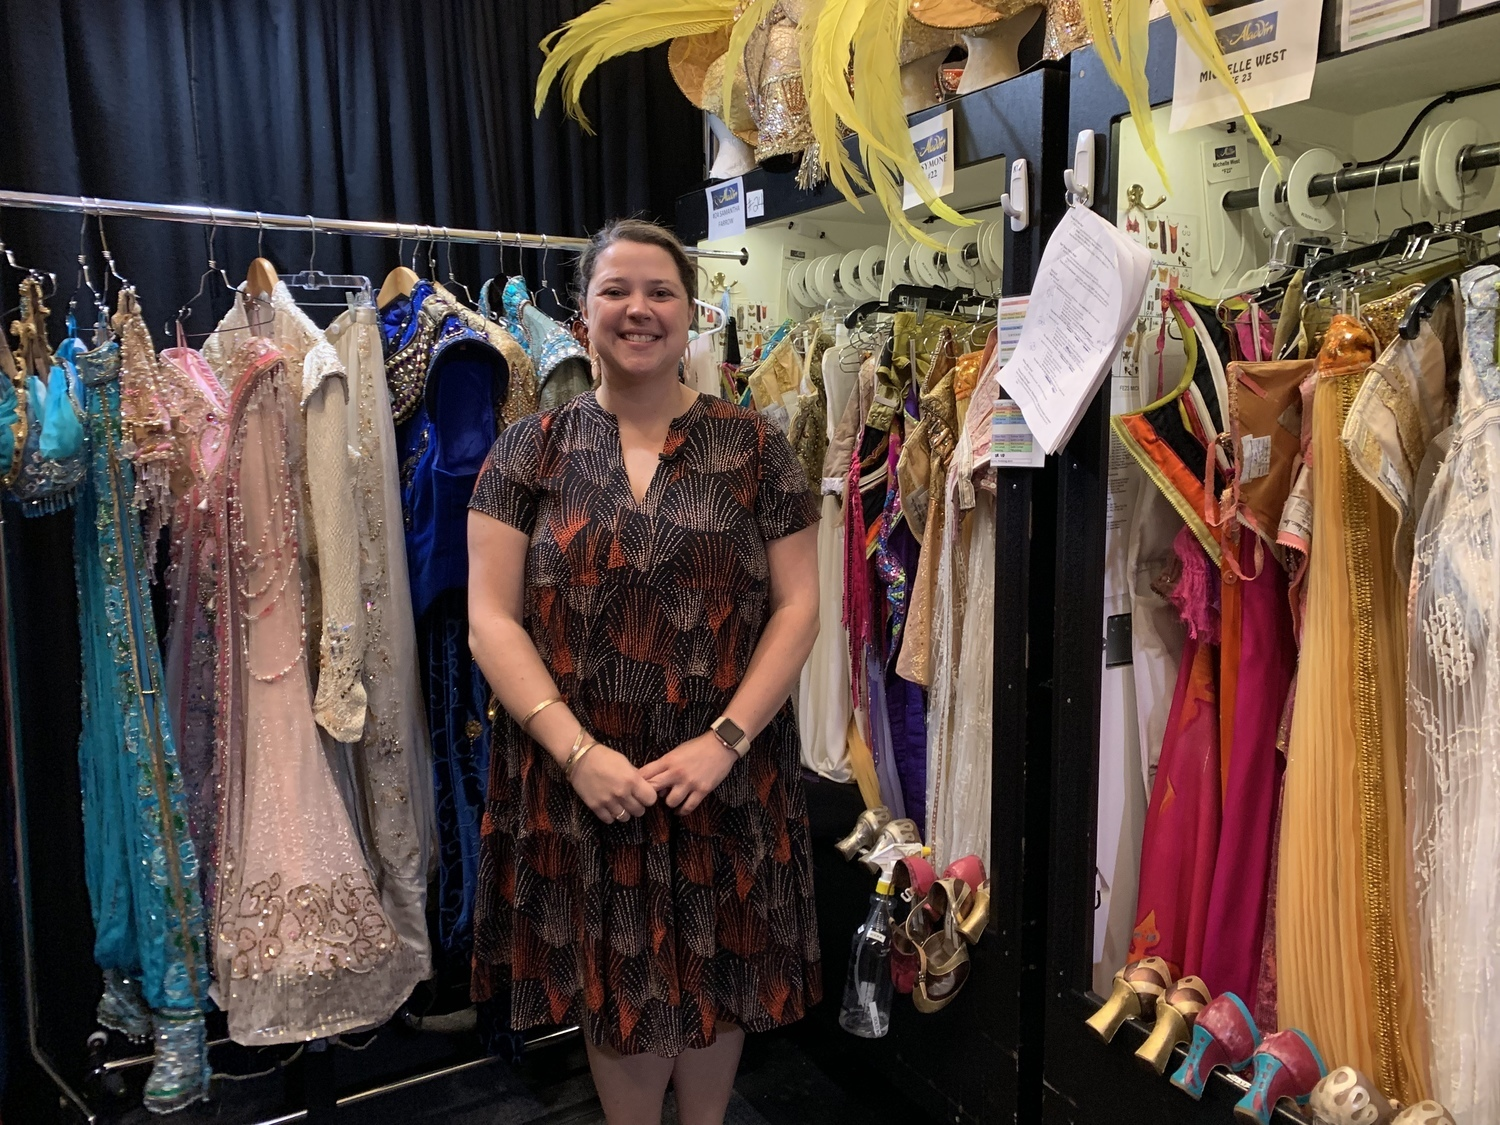 BWW Interview: Behind the Magic with Meredith Scott of ALADDIN at Dallas Summer Musicals